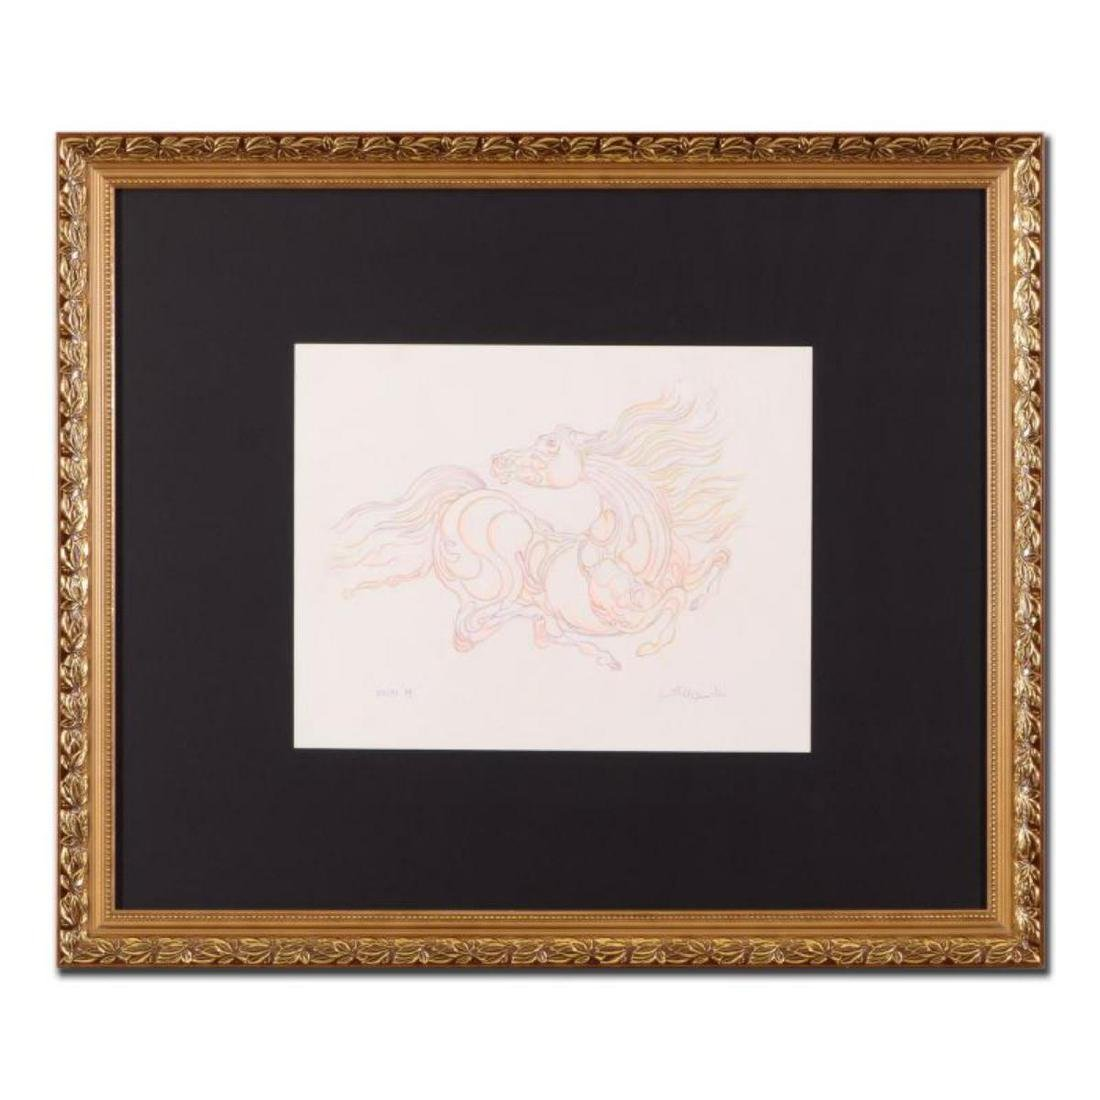 "Guillaume Azoulay - ""Essai M"" Framed Original Drawing,"